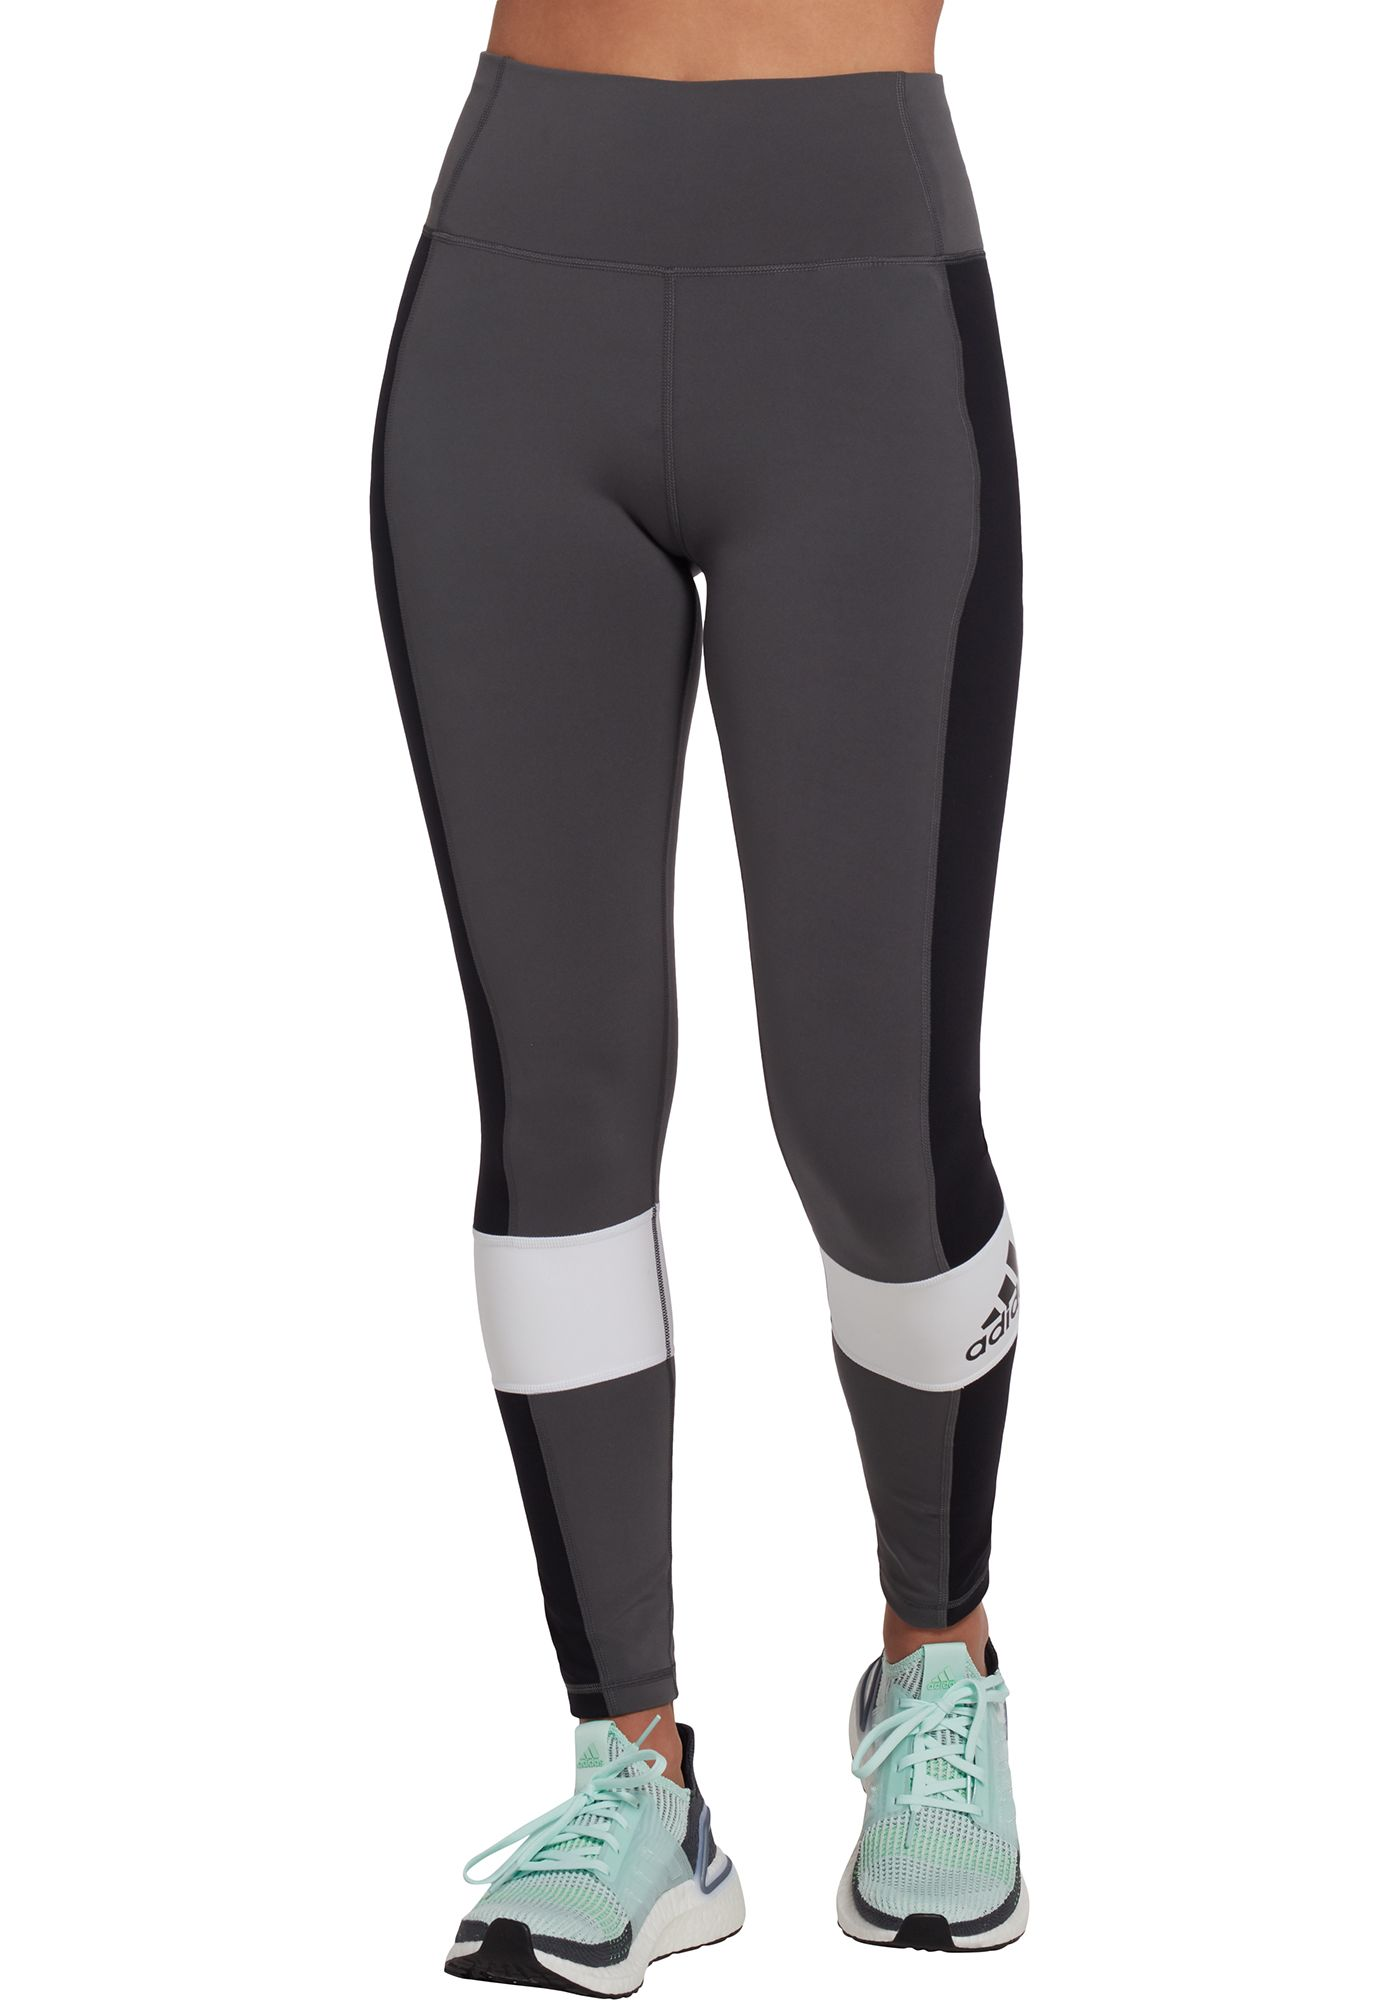 adidas Women's Believe This High Rise Sport Block 7/8 Tights